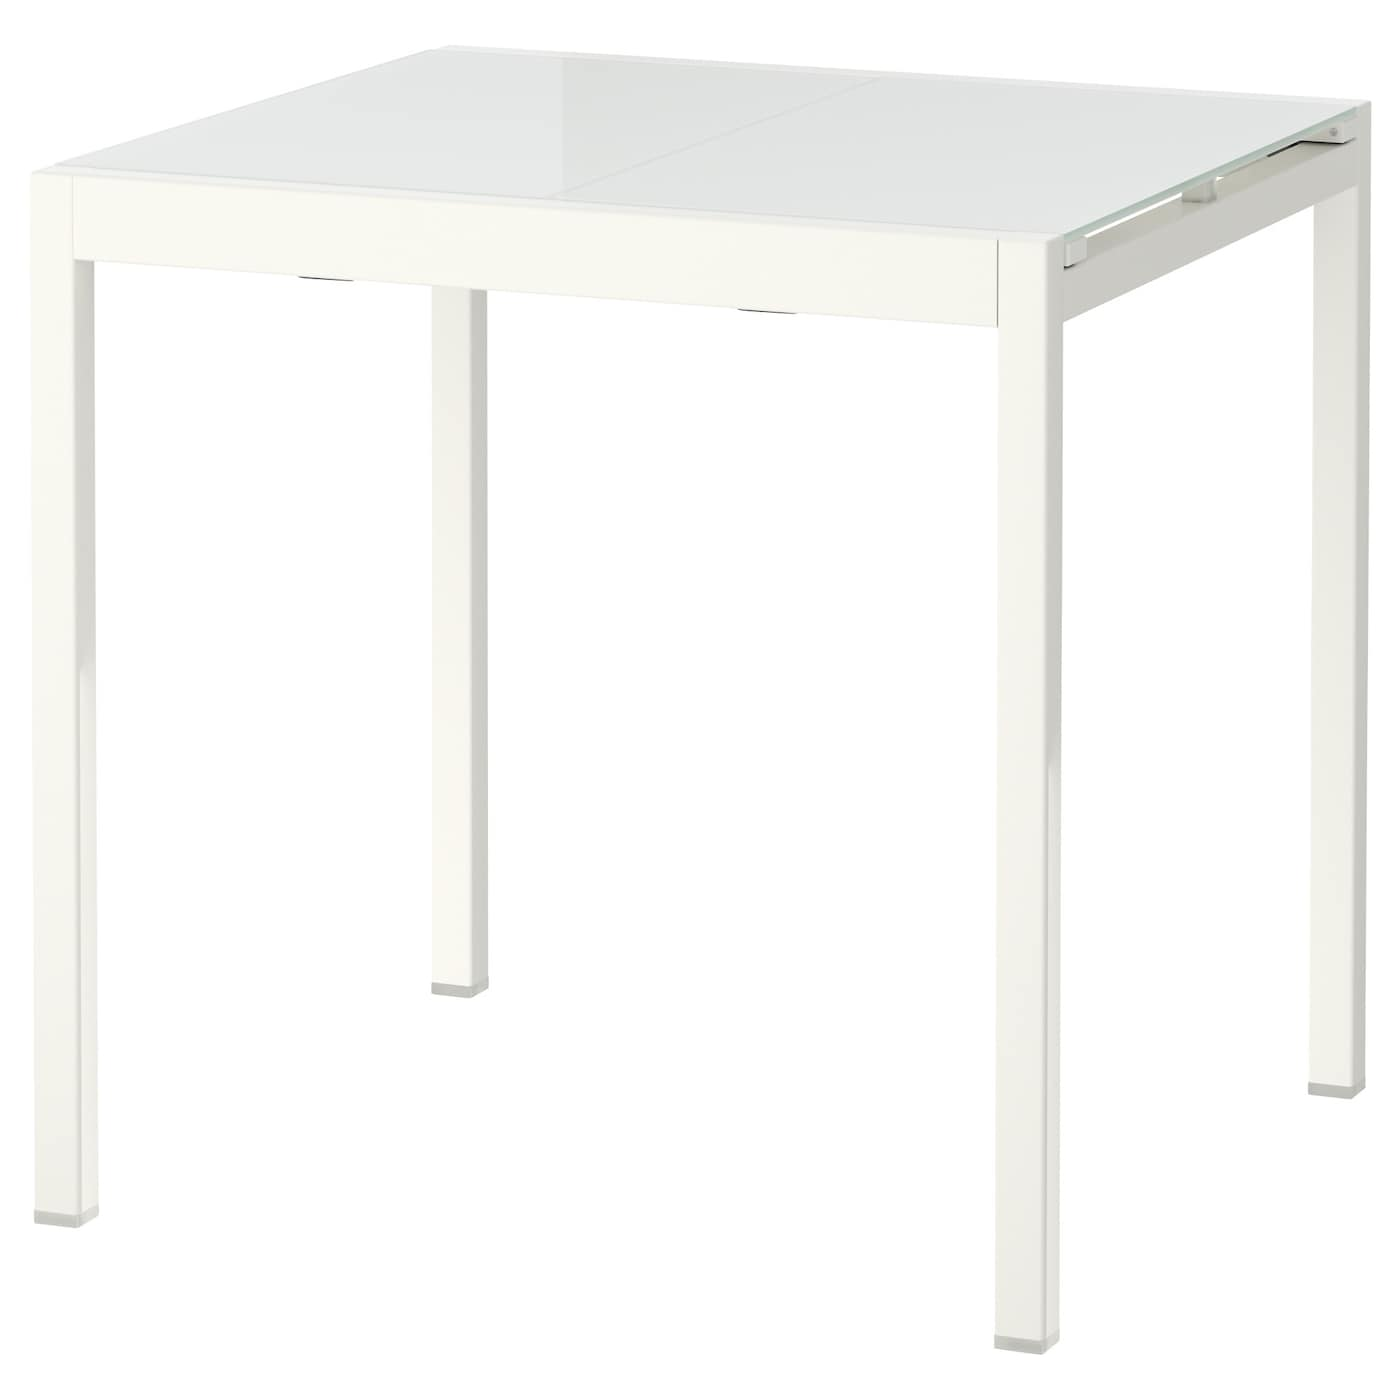 Glivarp extendable table white 75 115x70 cm ikea Table ronde extensible blanche